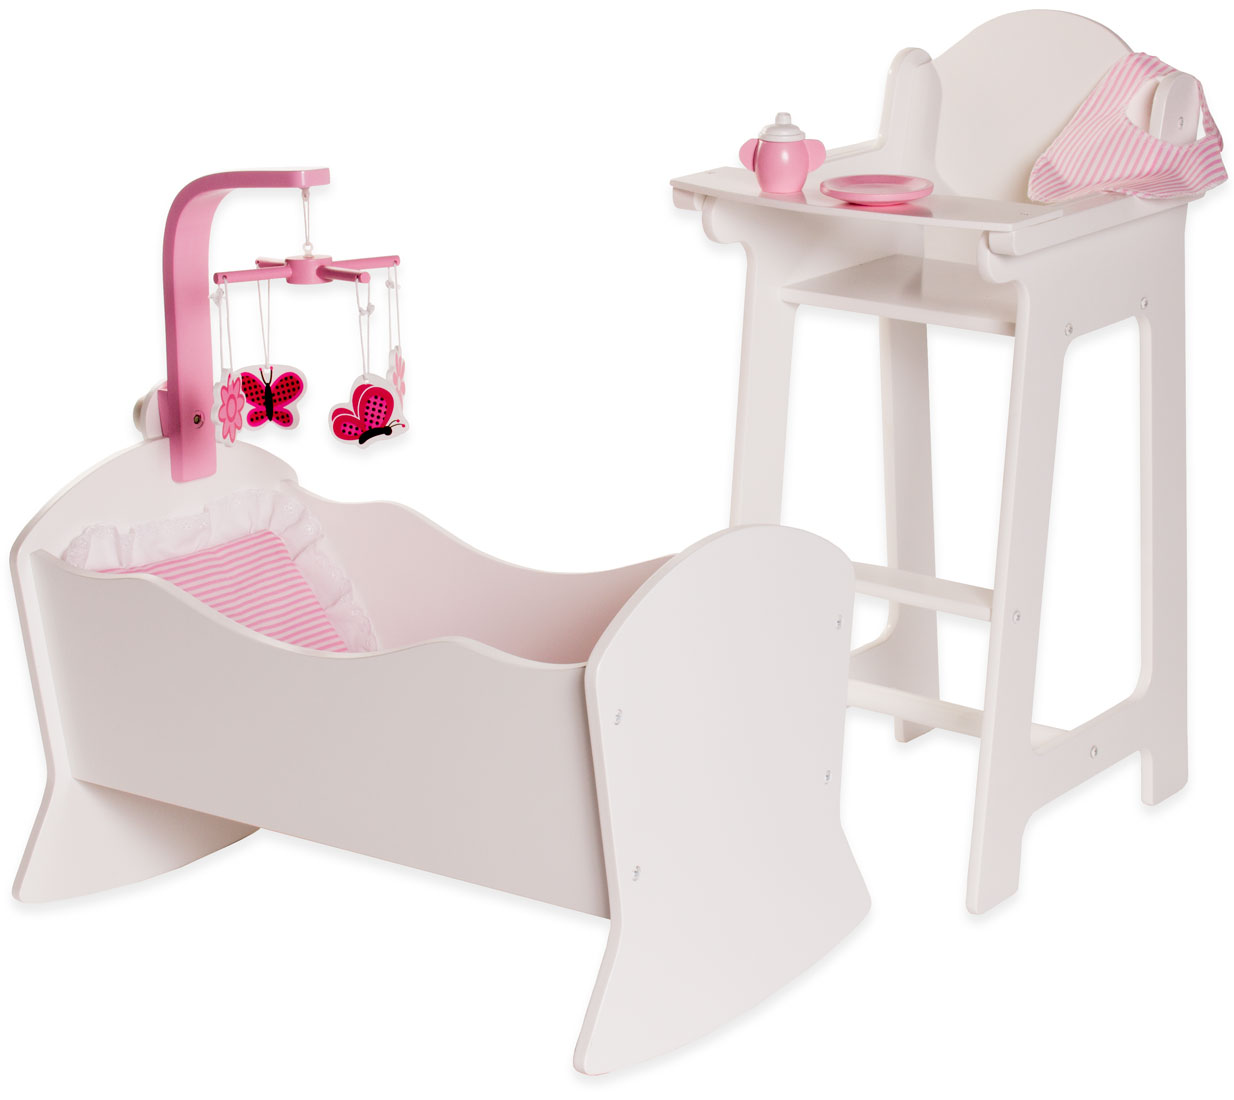 high chair with accessories old covers hire eimmie 18 inch doll furniture and cradle set walmart com